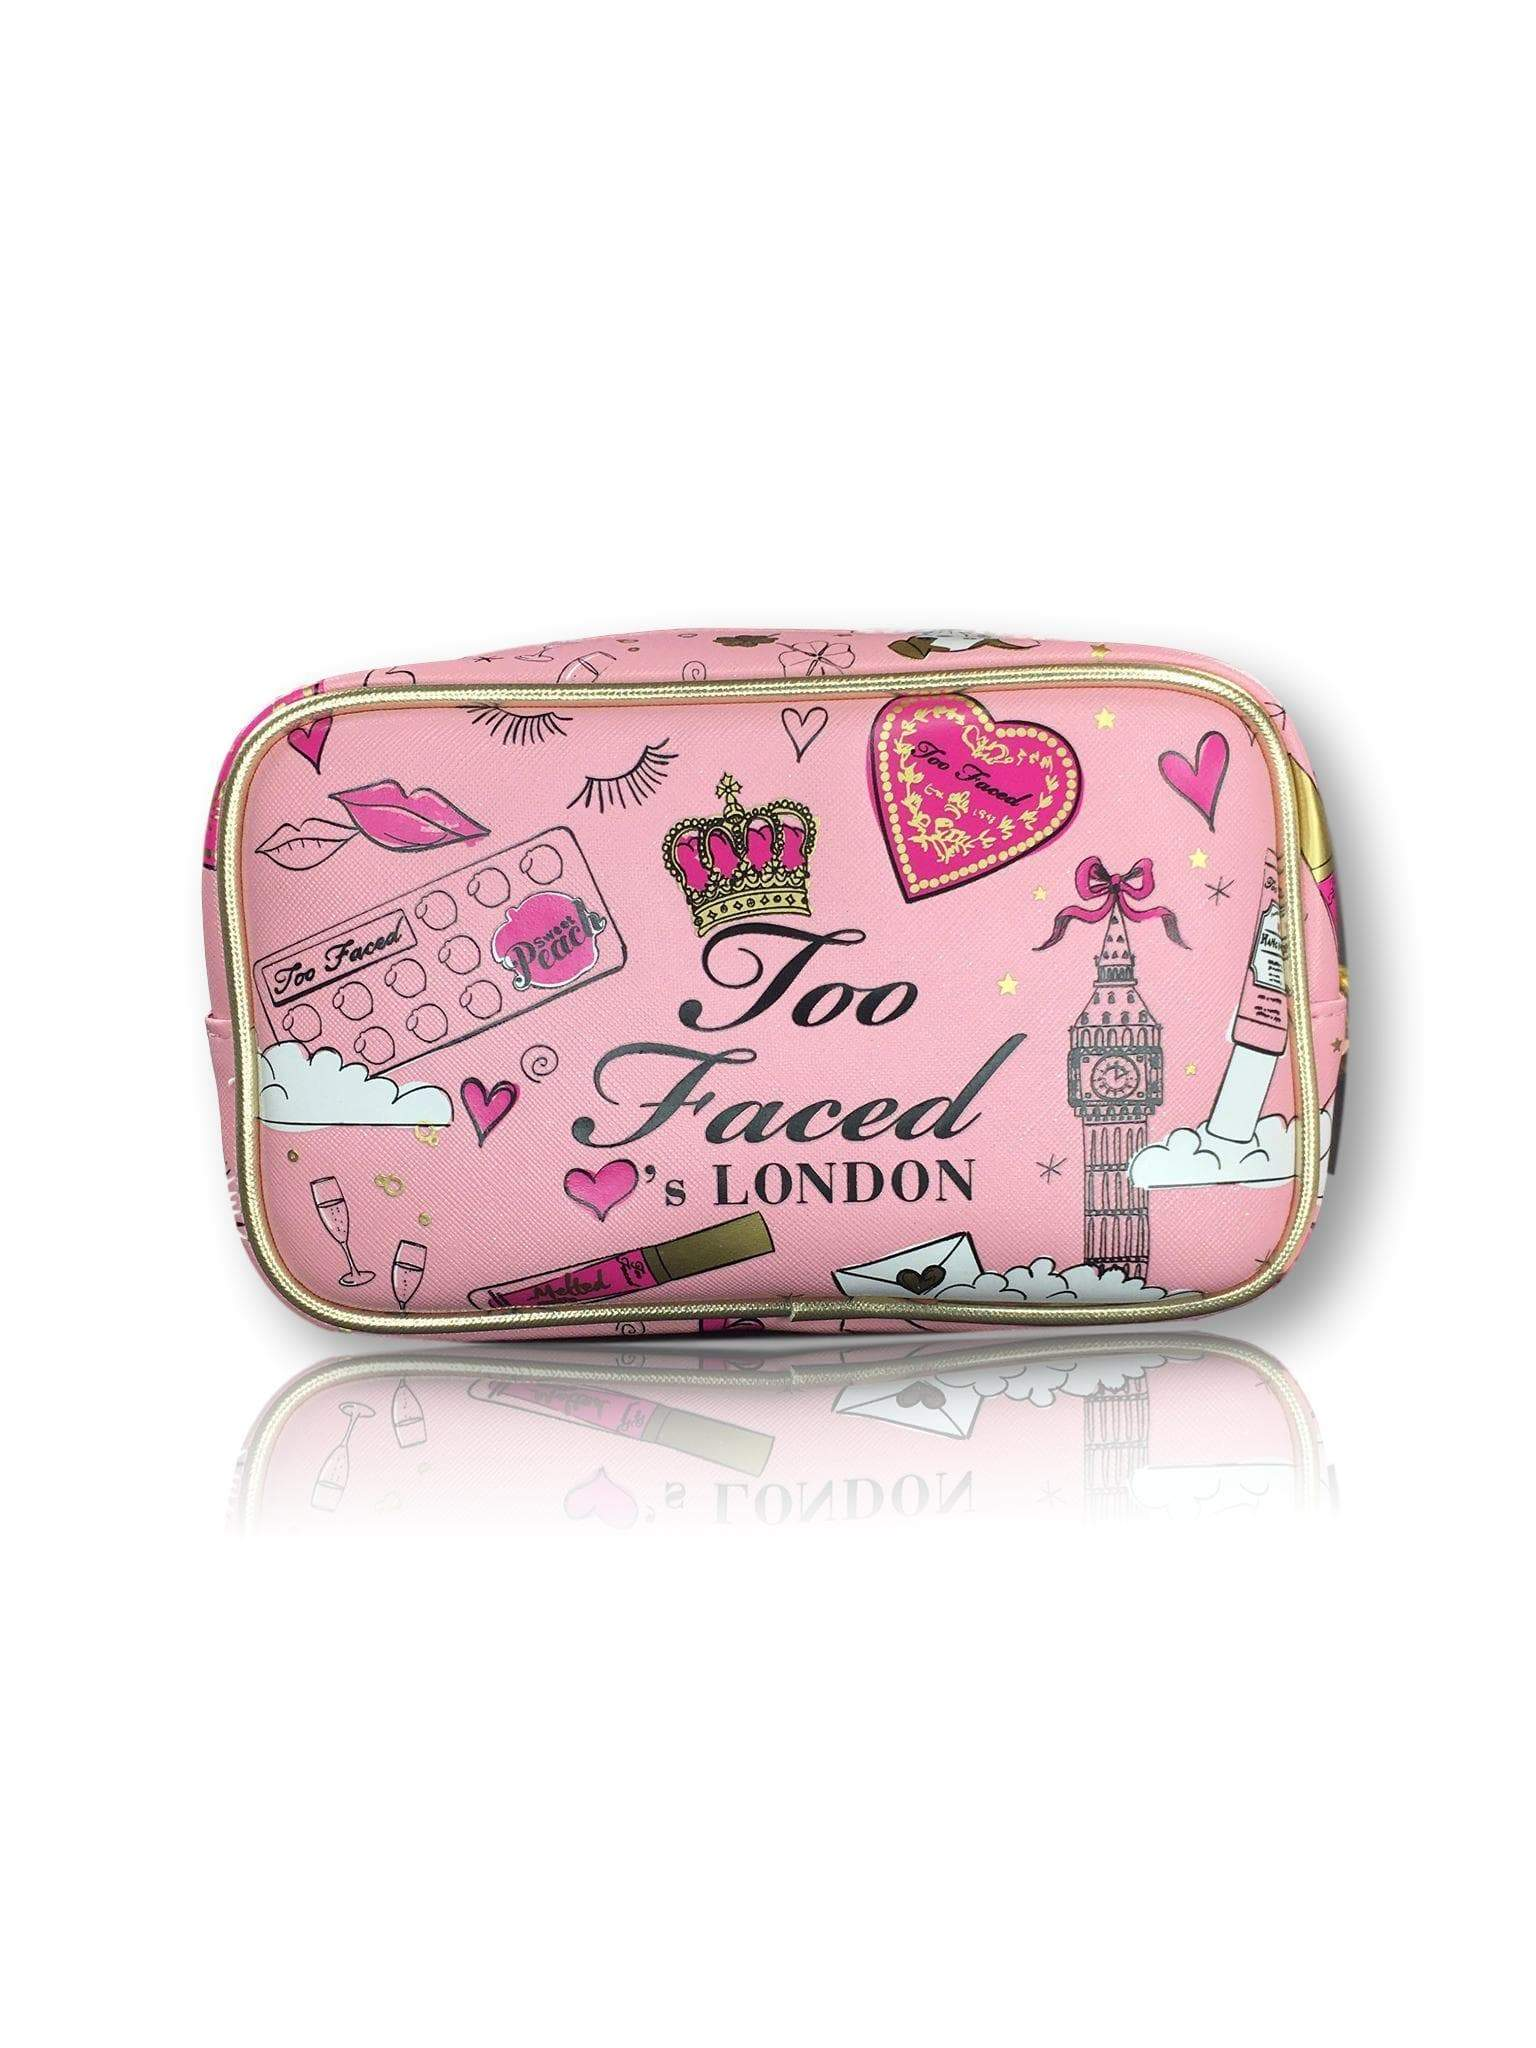 Too Faced Tools & Accessories Too Faced LVS London Makeup Bag - Limited Edition